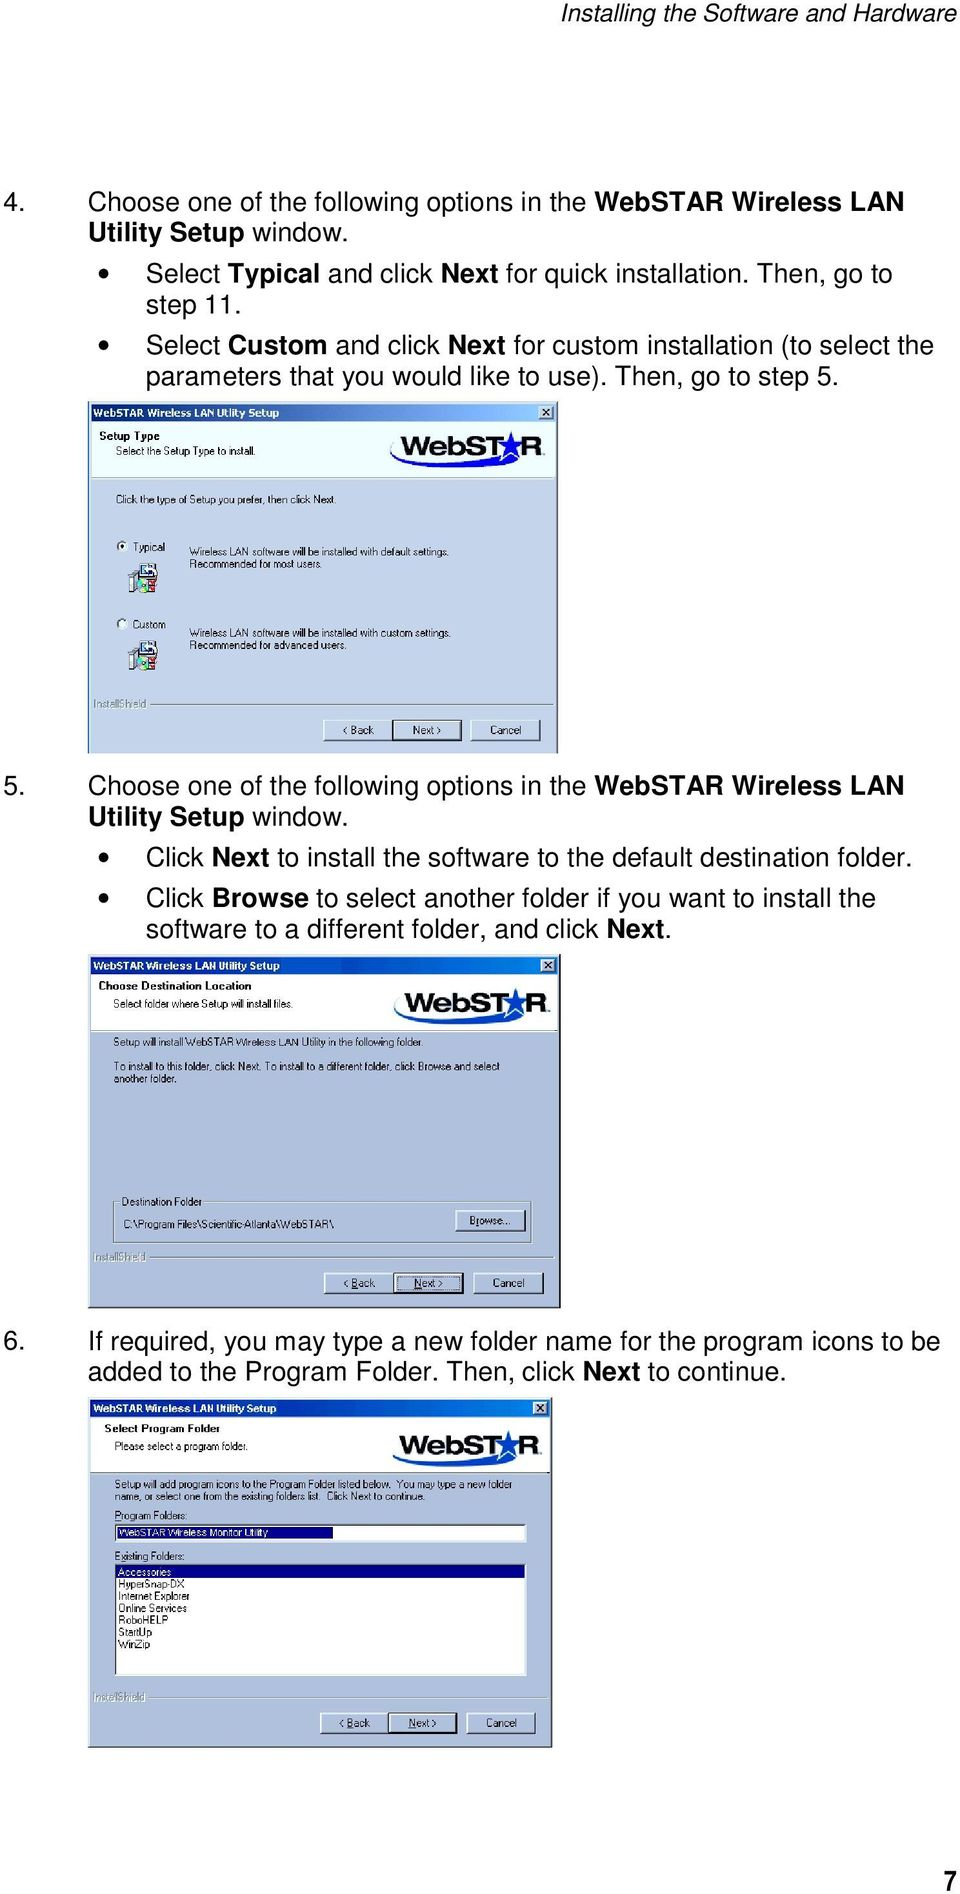 5. Choose one of the following options in the WebSTAR Wireless LAN Utility Setup window. Click Next to install the software to the default destination folder.